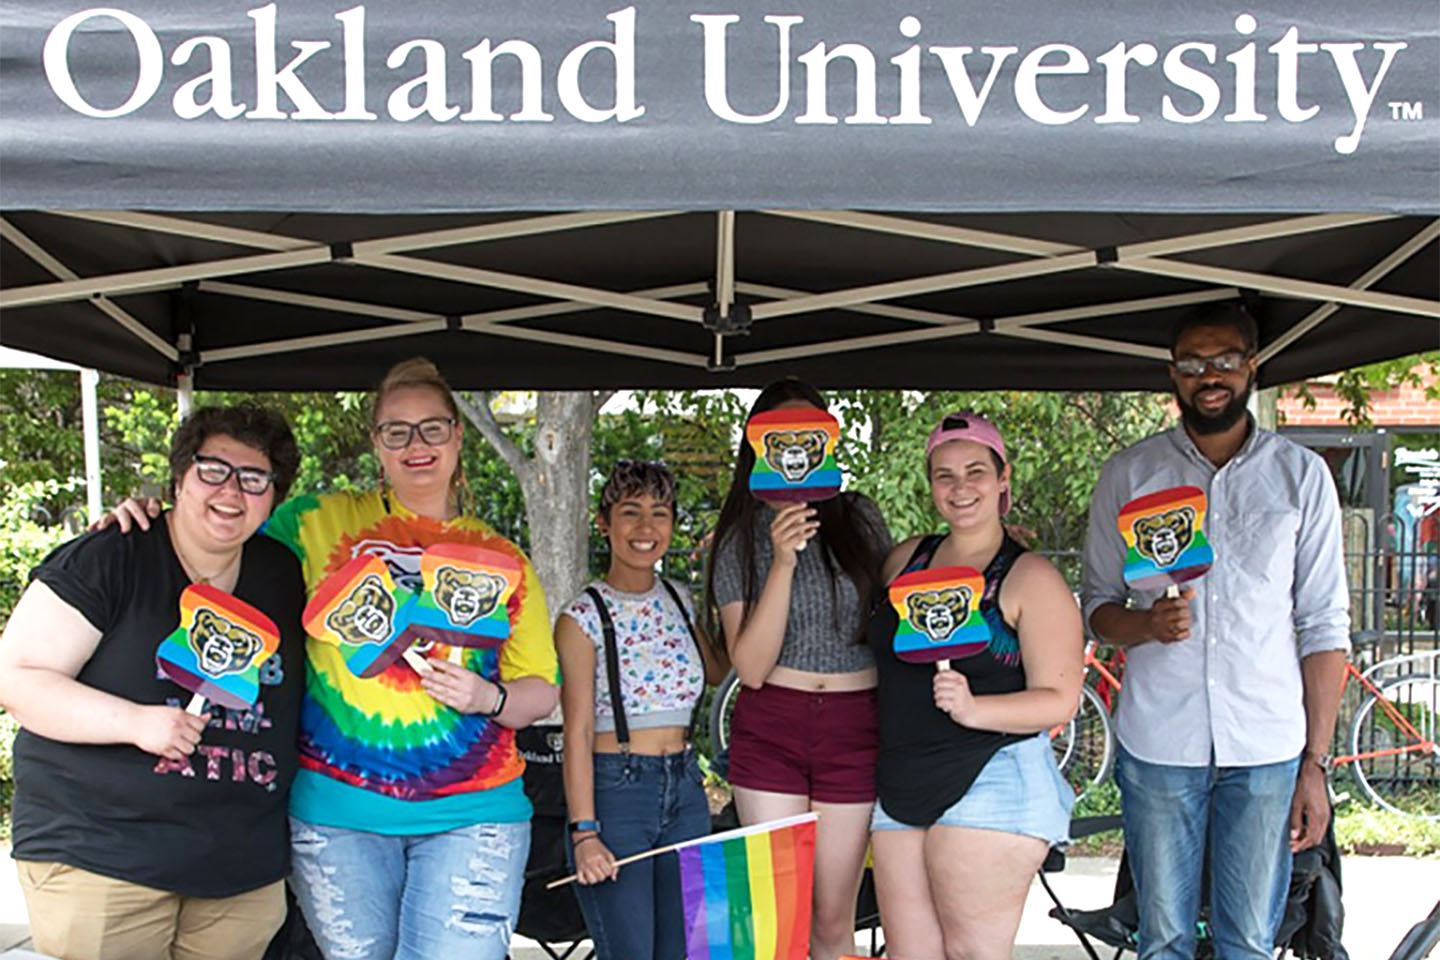 Oakland University to share LGBTQ pride at Ferndale, Motor City festivals